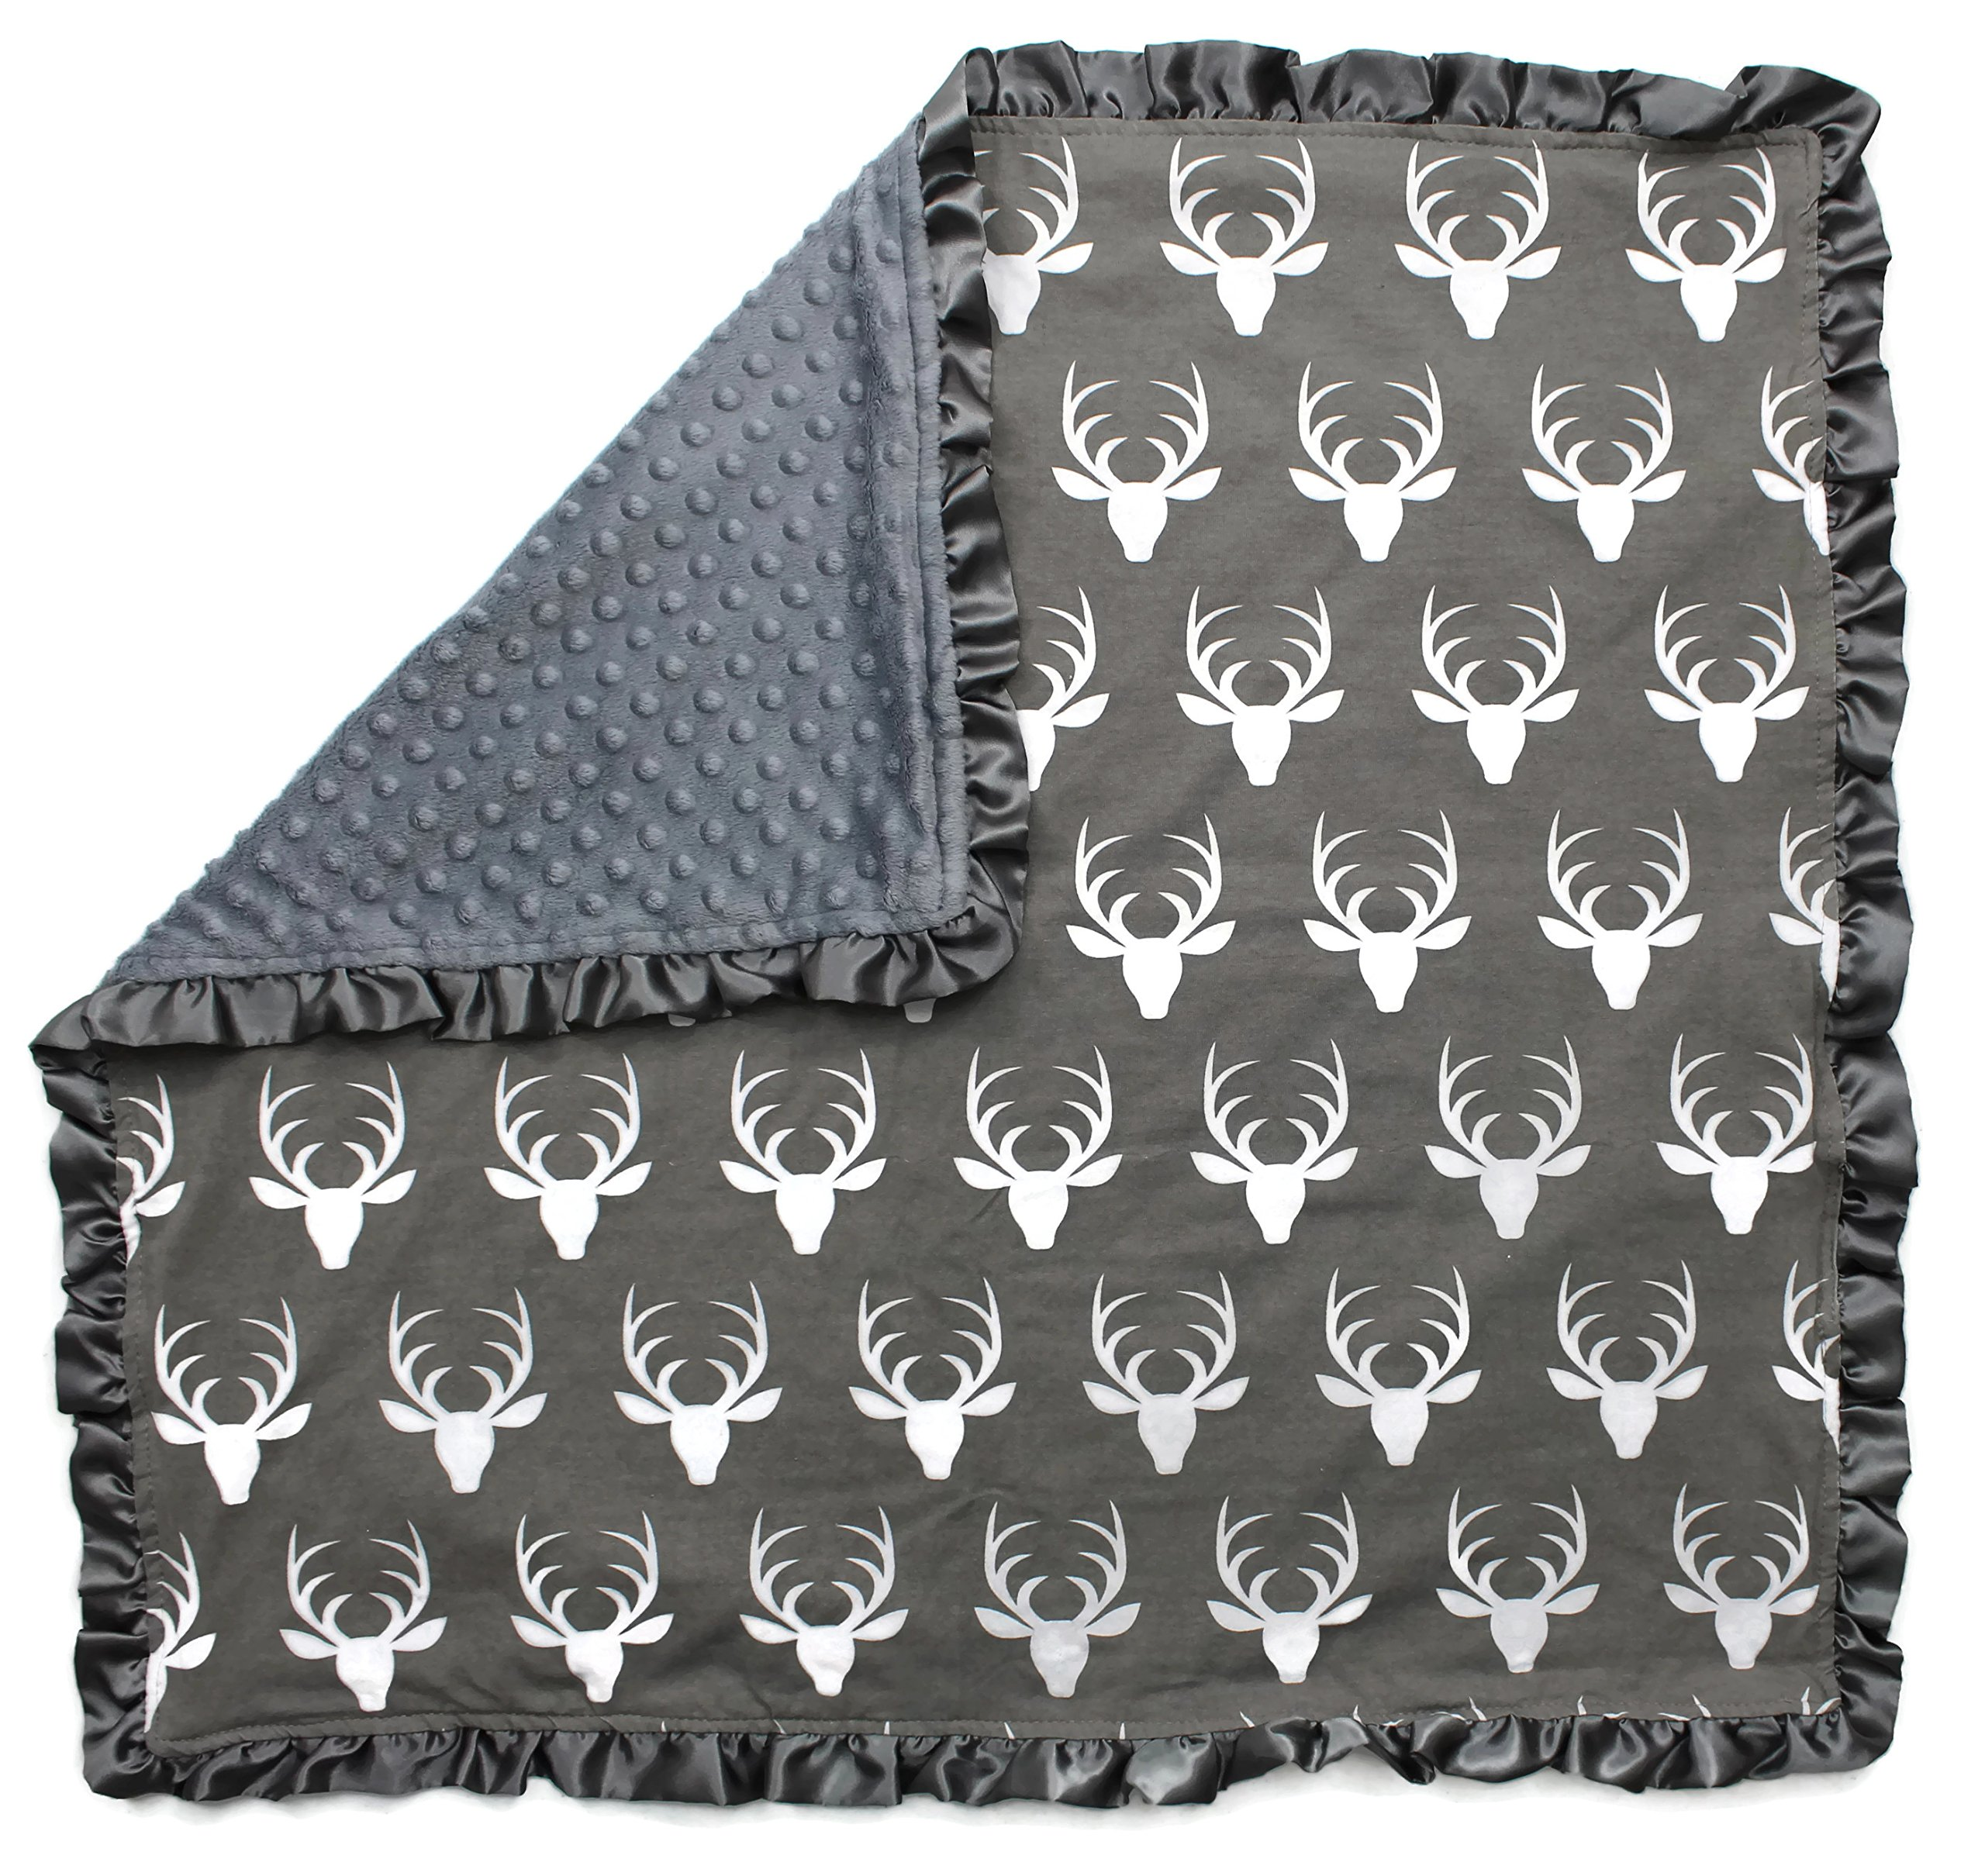 Dear Baby Gear Baby Blankets, Antlers on Grey, Grey Minky, 32 Inches by 32 Inches